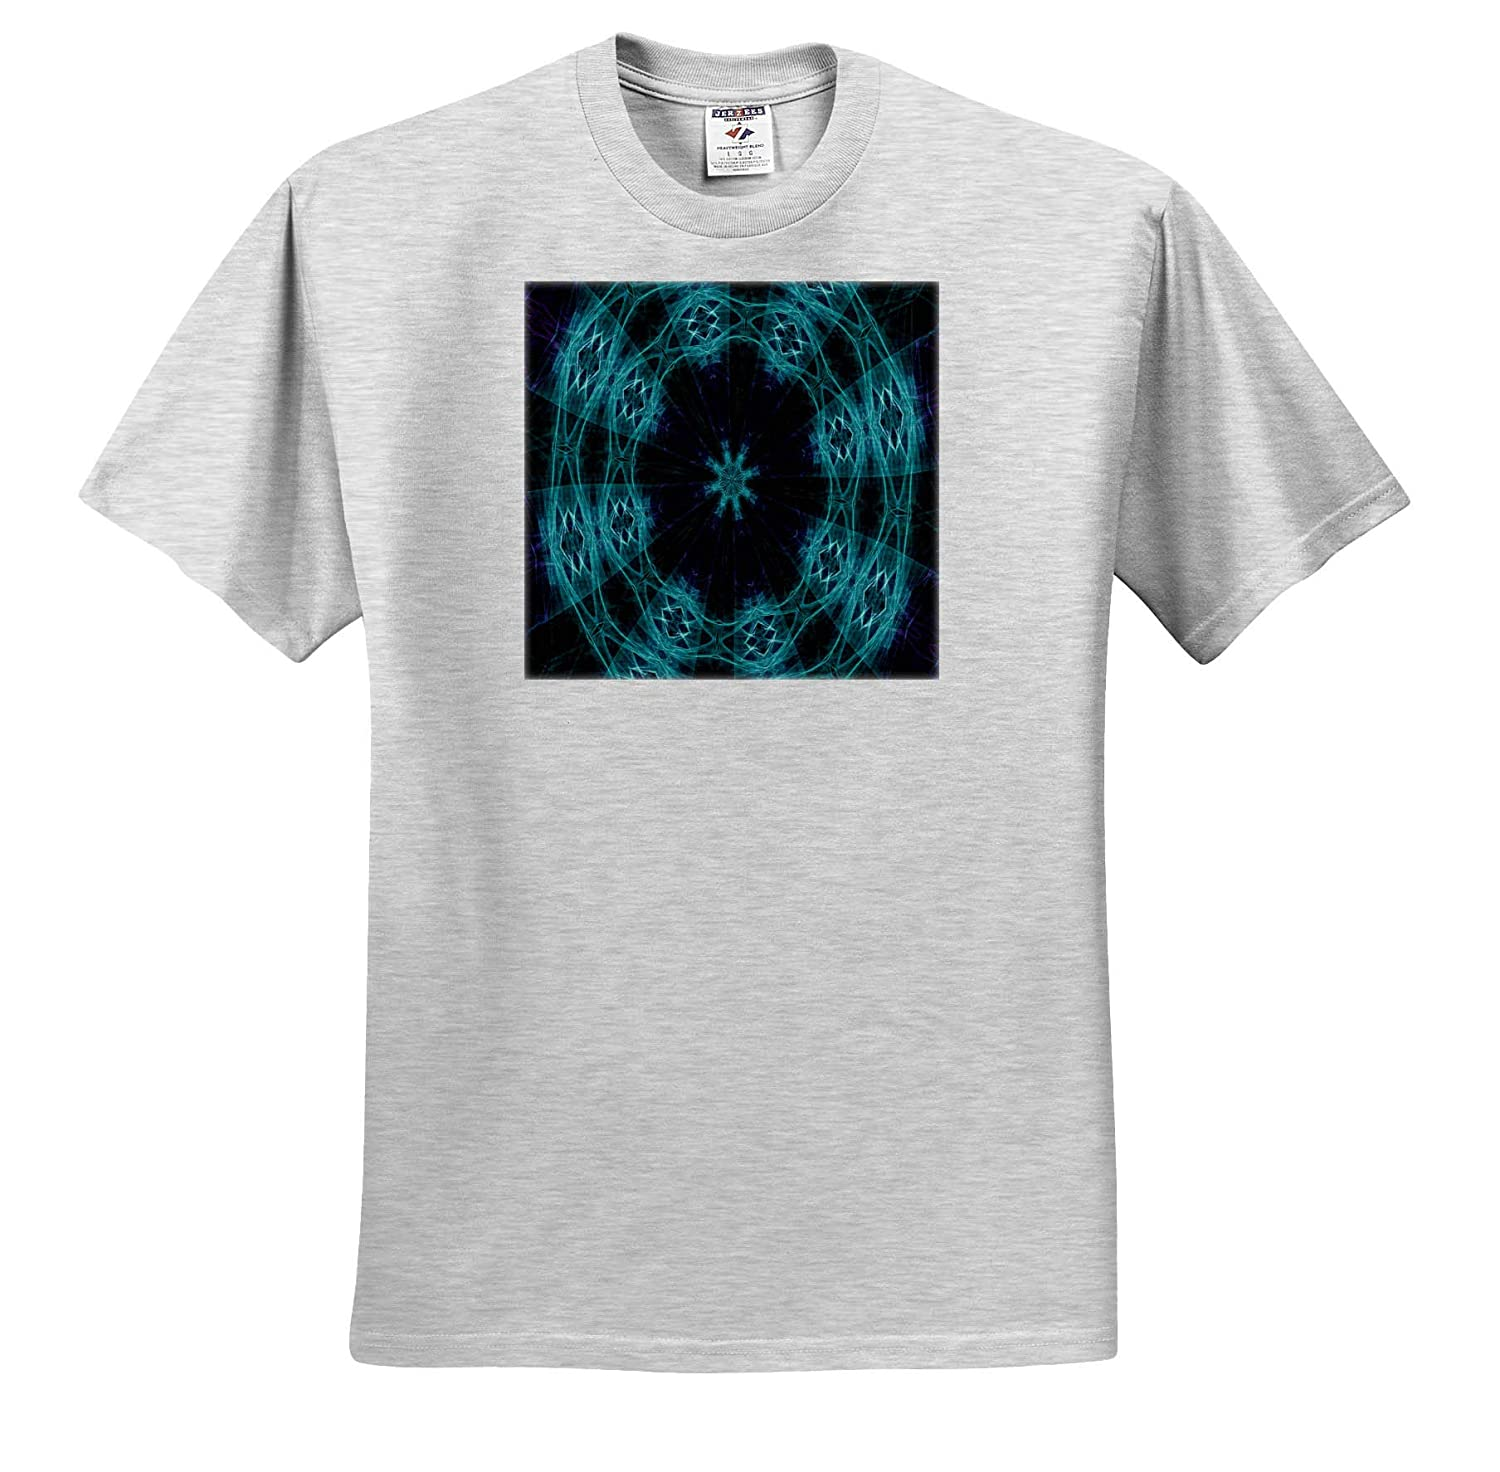 Adult T-Shirt XL Design ts/_314282 3dRose Dreamscapes by Leslie Purple and Teal Dreamscapes Design 2